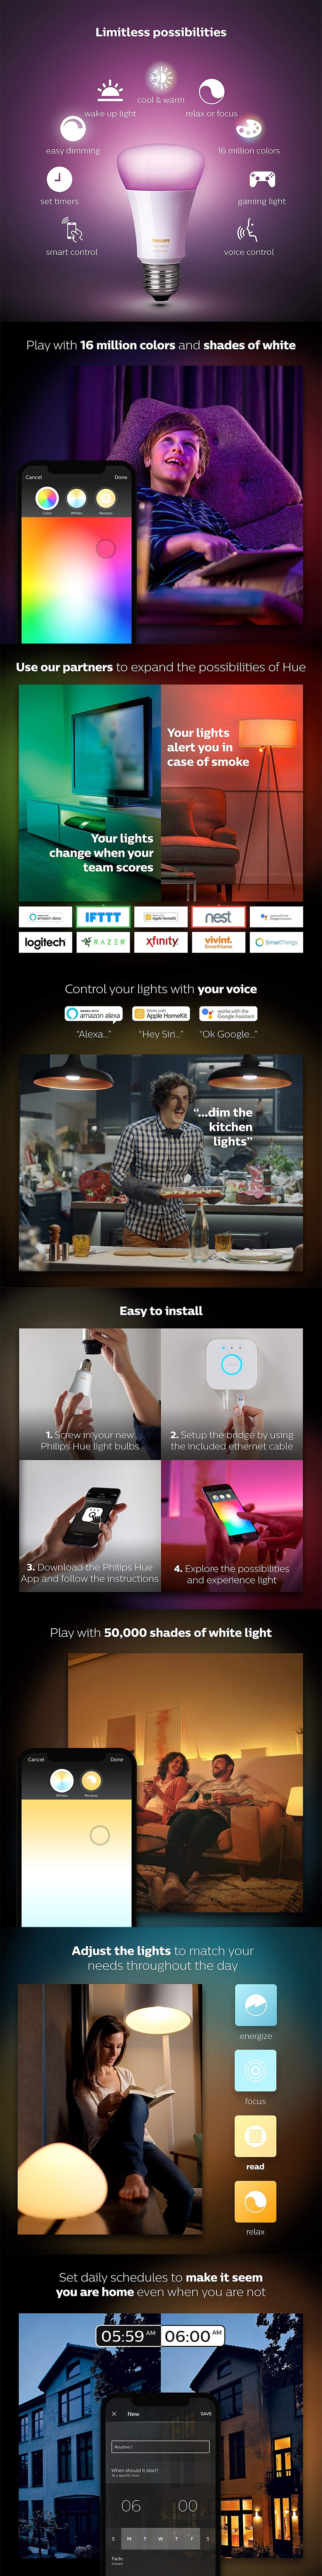 Philips Hue White/Colour Ambiance Smart Bulb Starter Kit - Edison Fitting - Desktop Overview 1